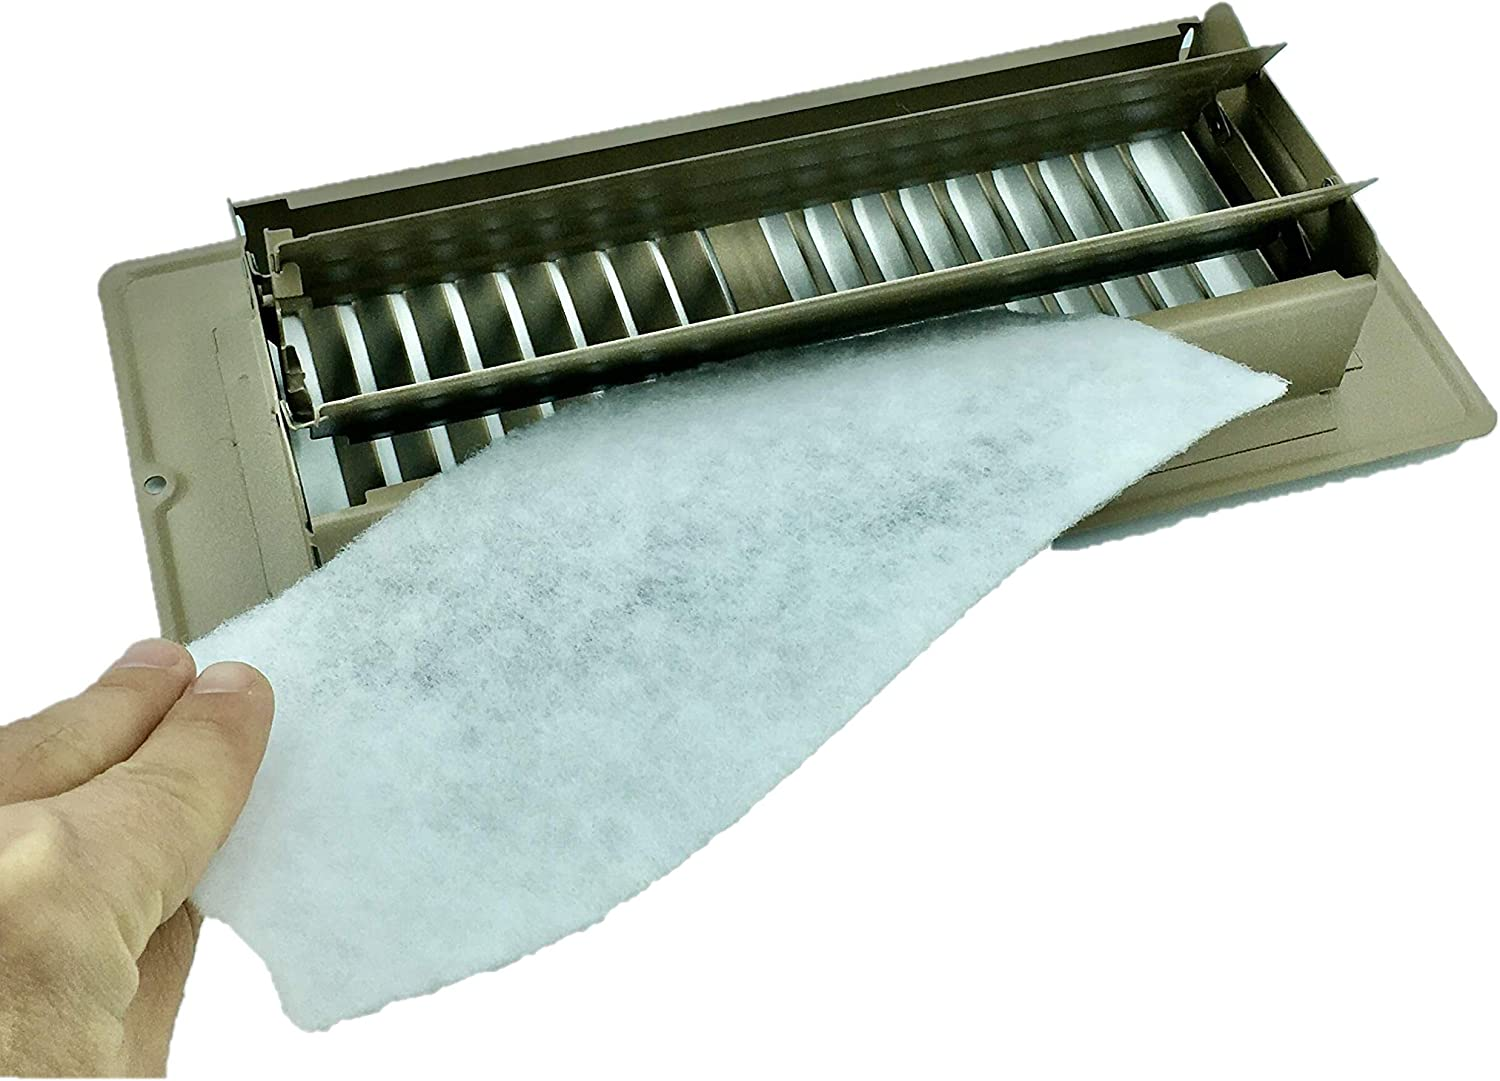 "Vent Register Filters, 24 pieces of Floor Vent filtration for Dust, Allergies, Odors and more. 4""x10"", 90 day filtration."